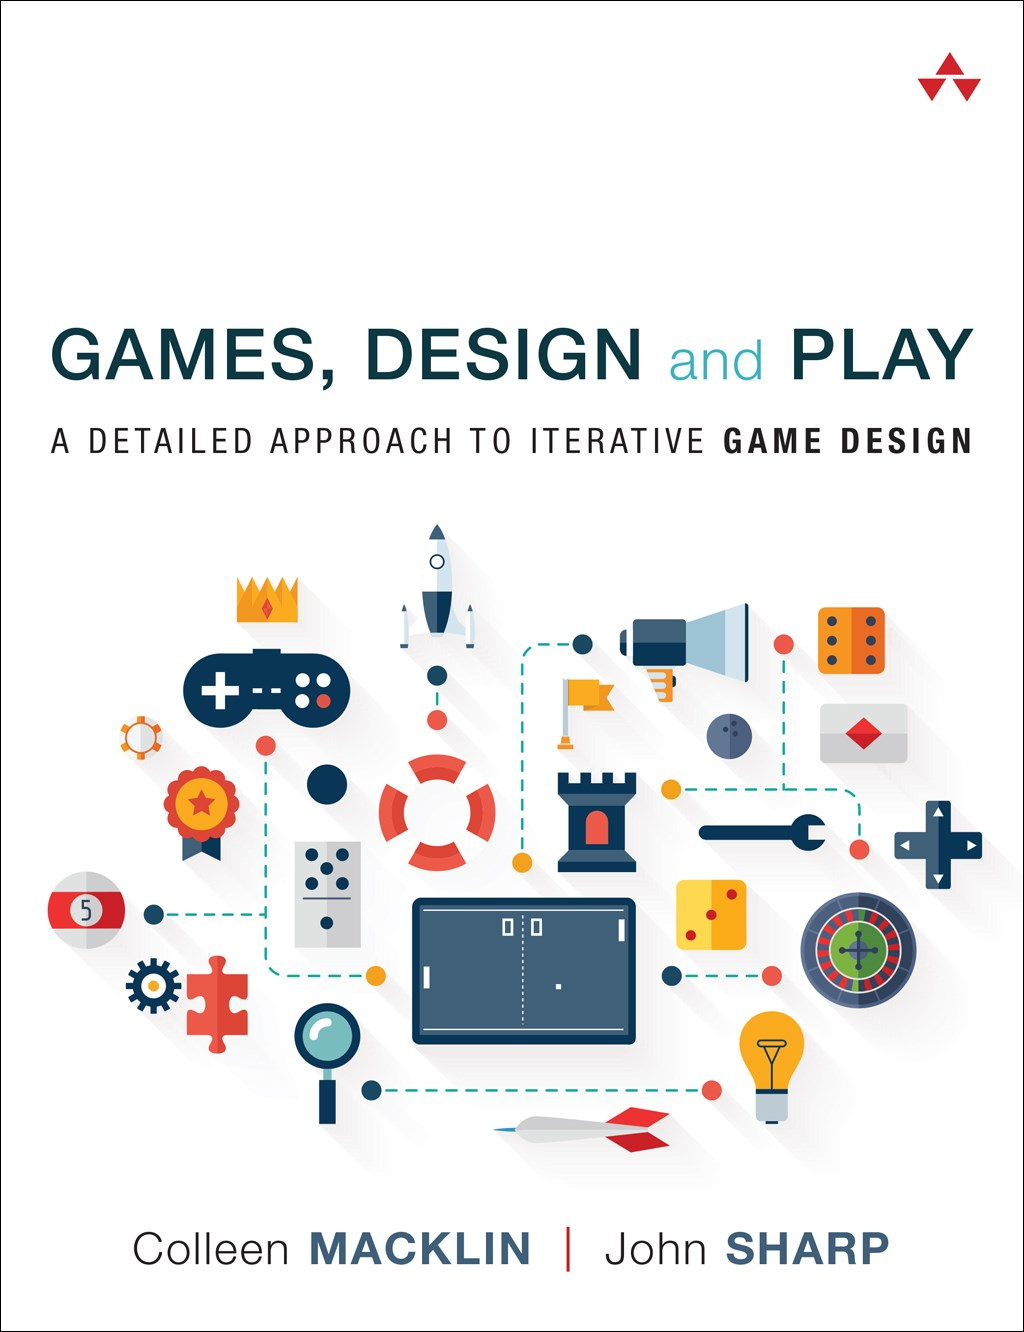 Games, Design and Play: A detailed approach to iterative game design